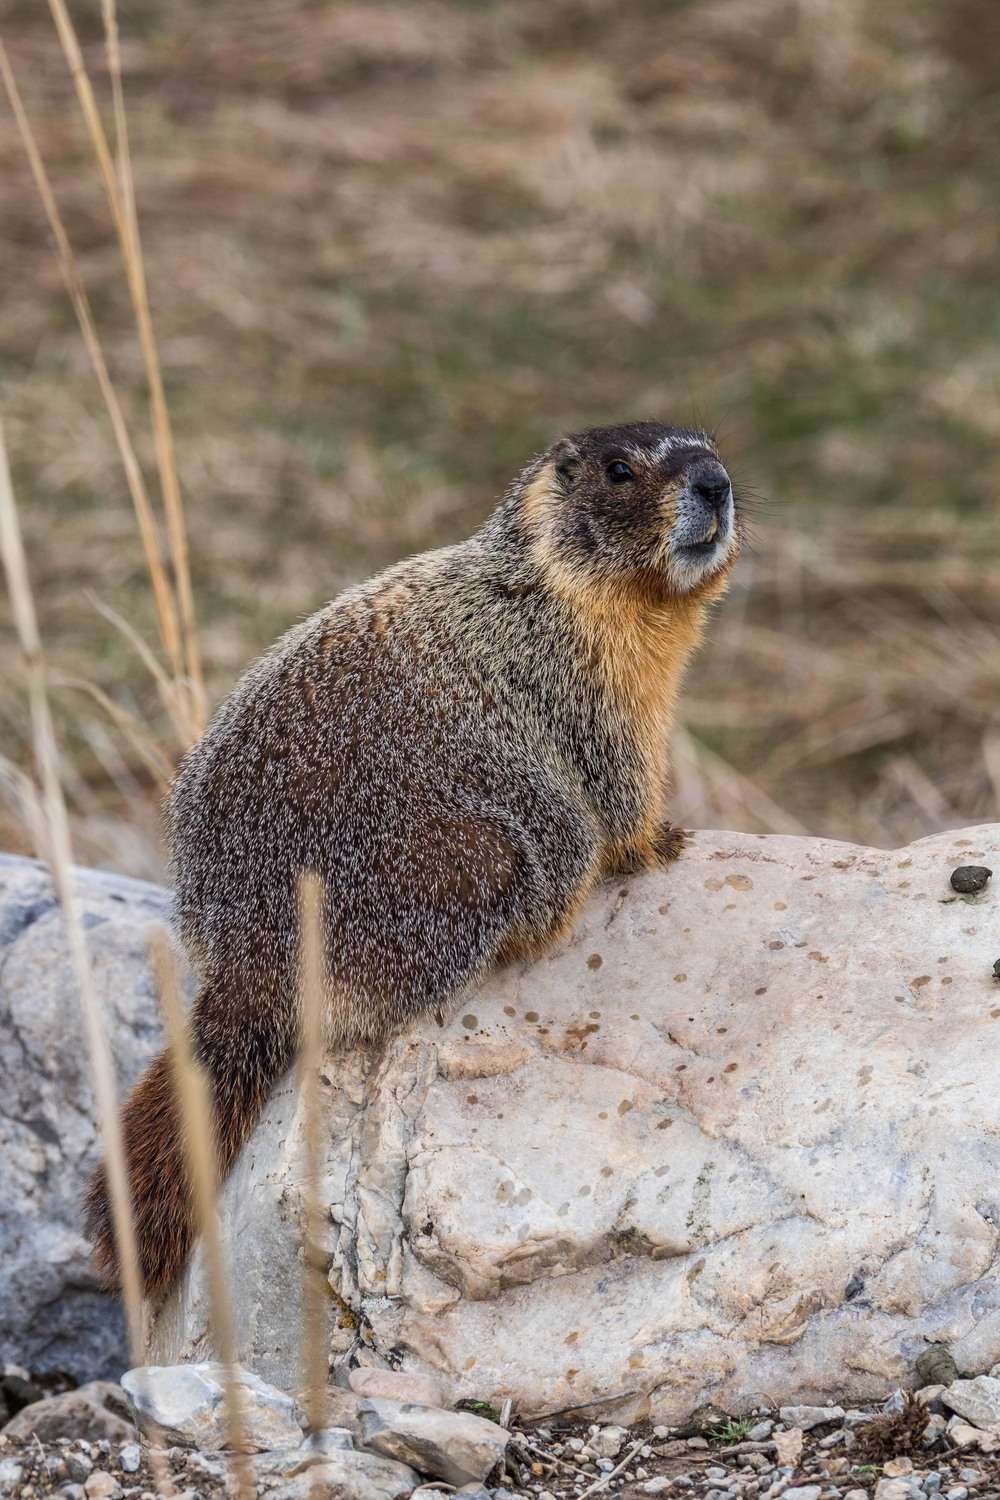 Marmot in Great Basin National Park, Nevada.